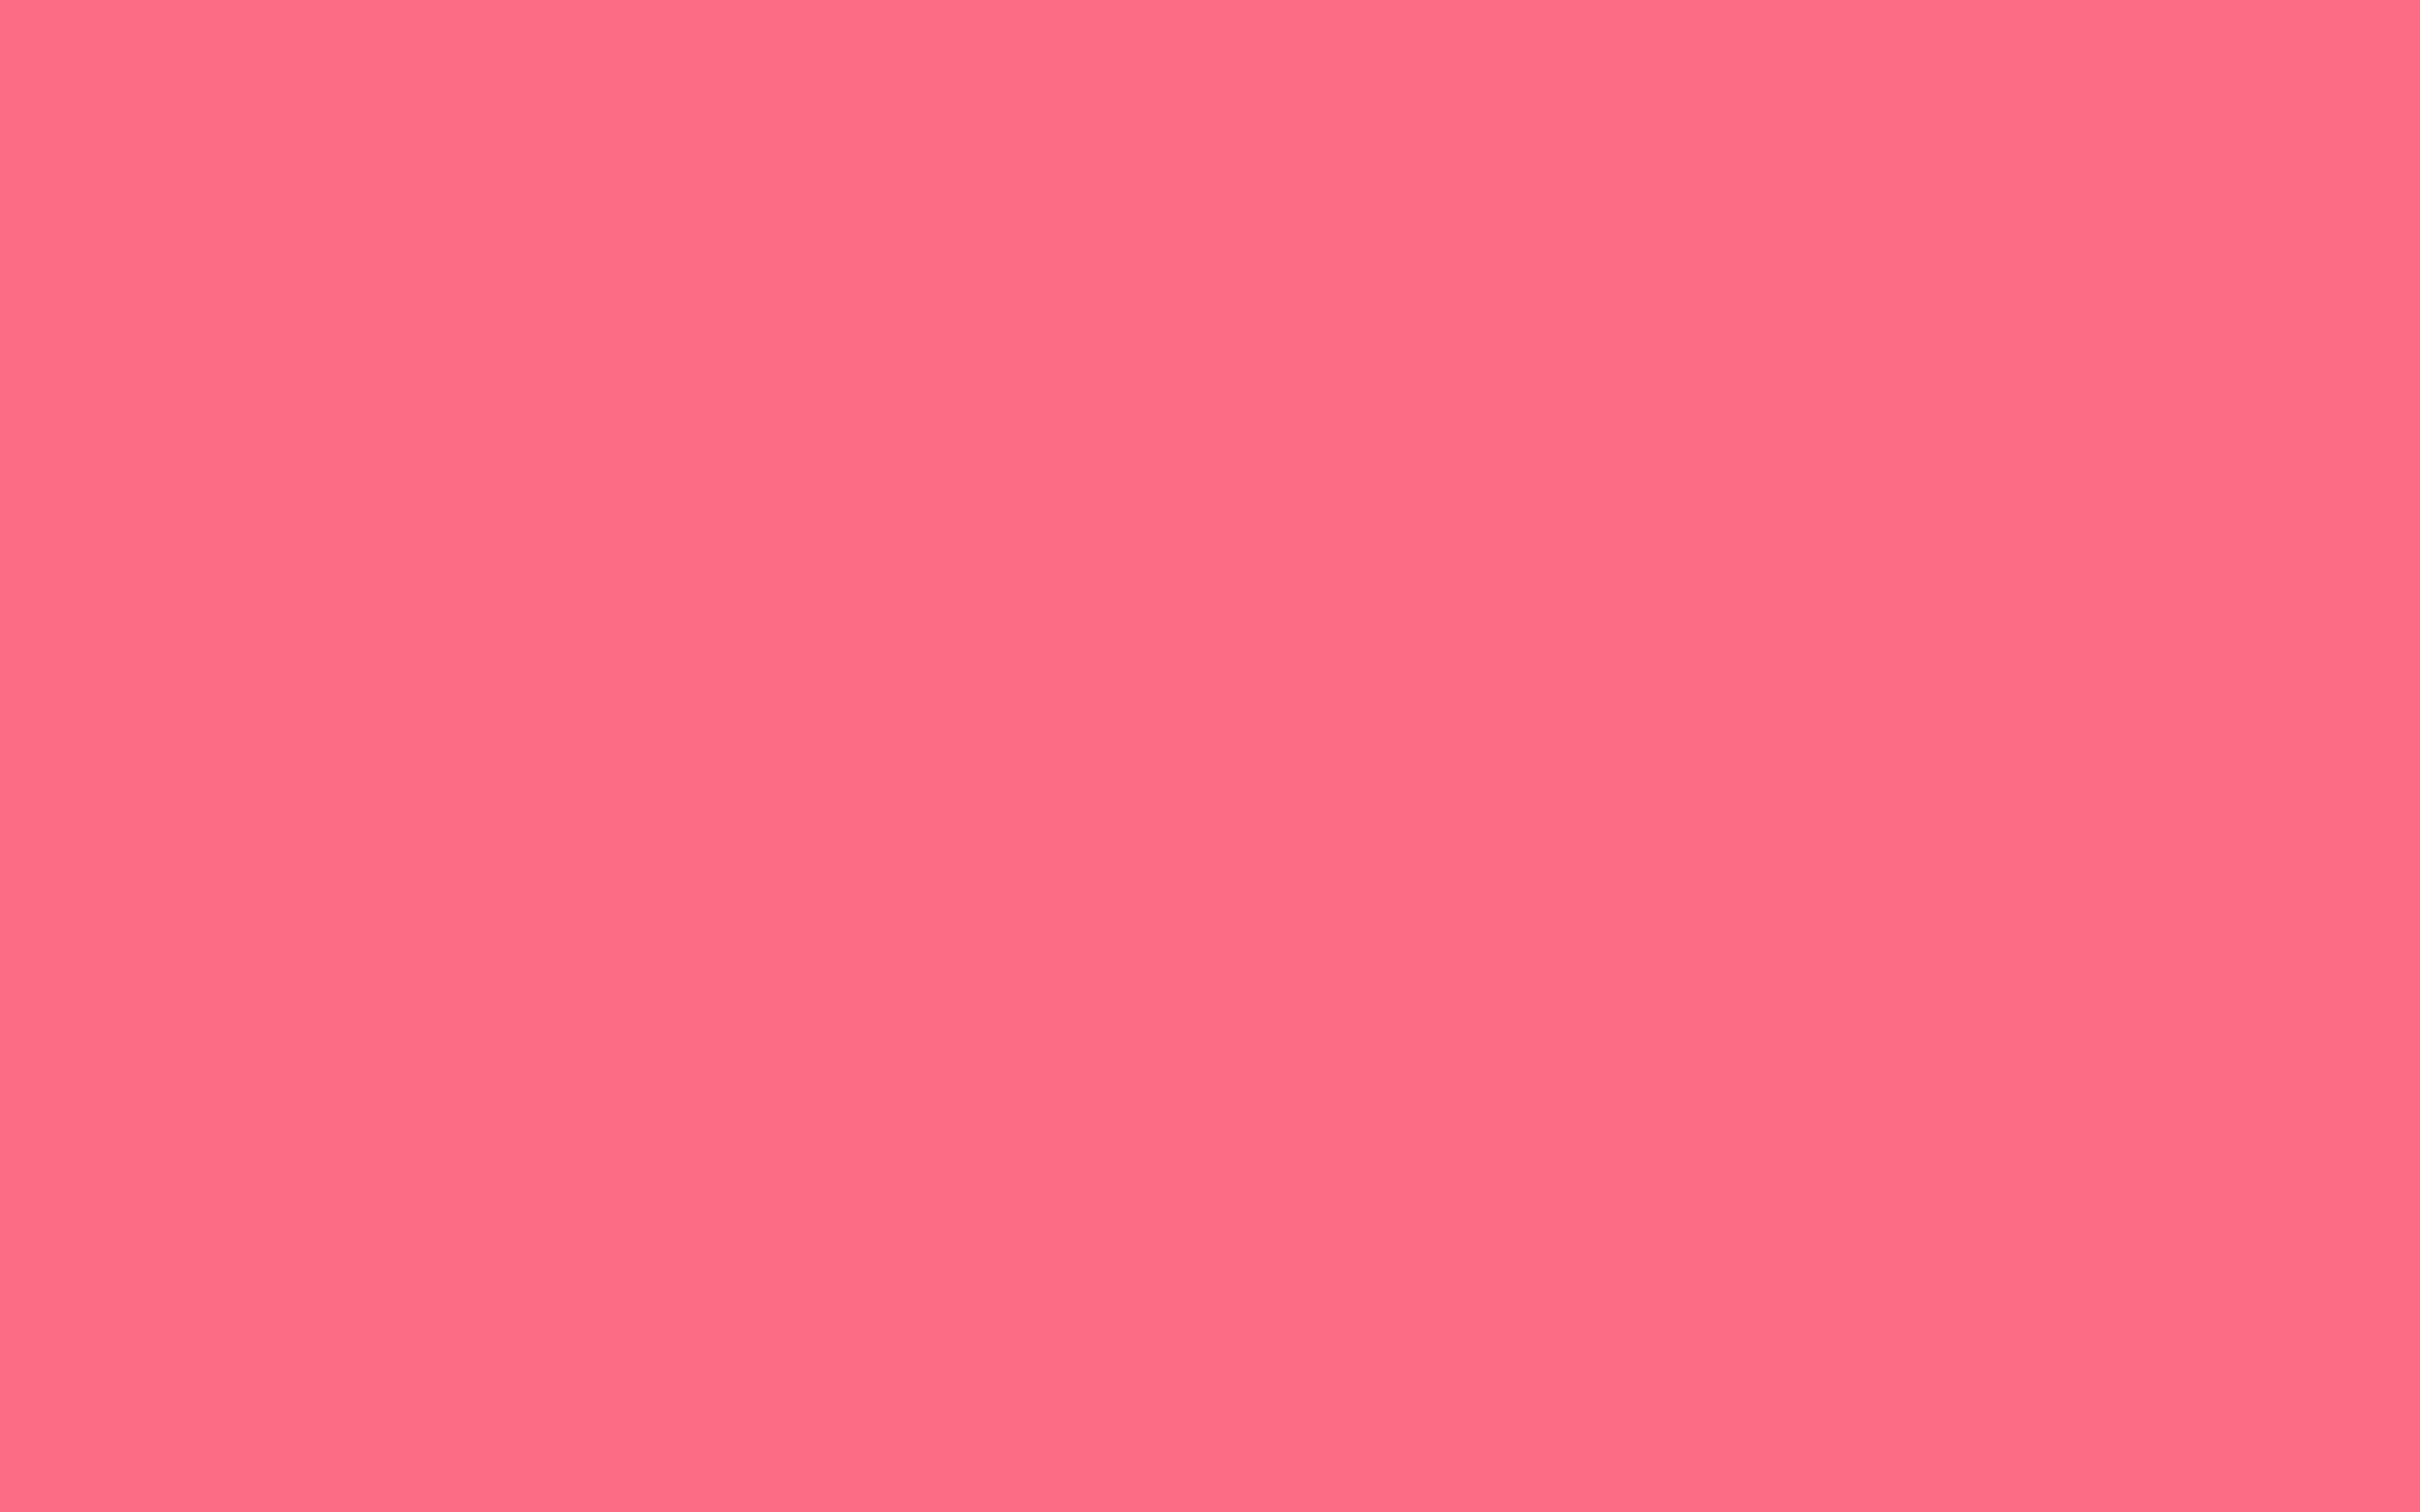 2880x1800 Wild Watermelon Solid Color Background